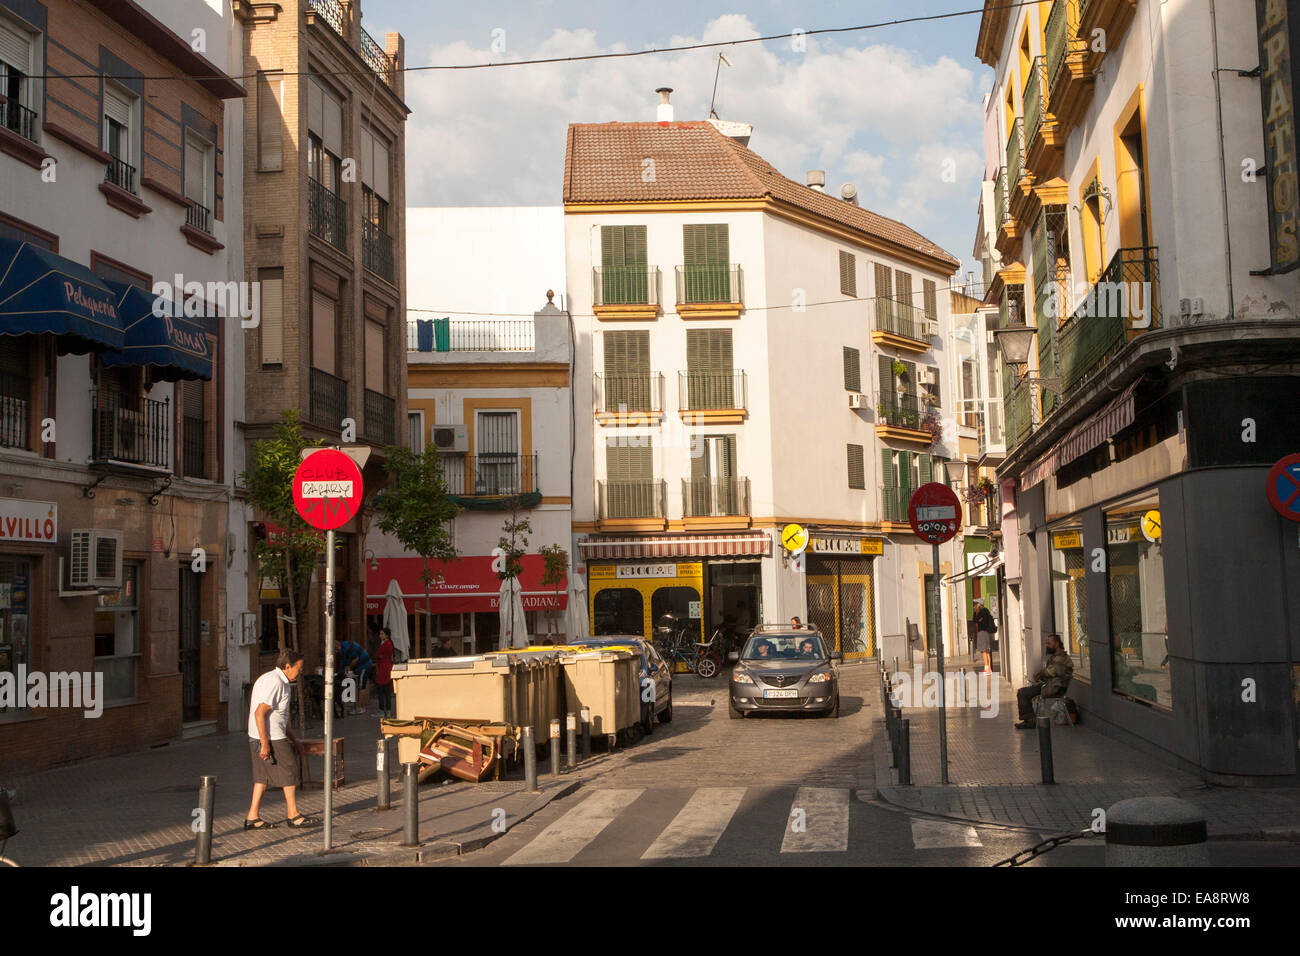 Street and housing in Bario Macarena, Seville, Spain - Stock Image